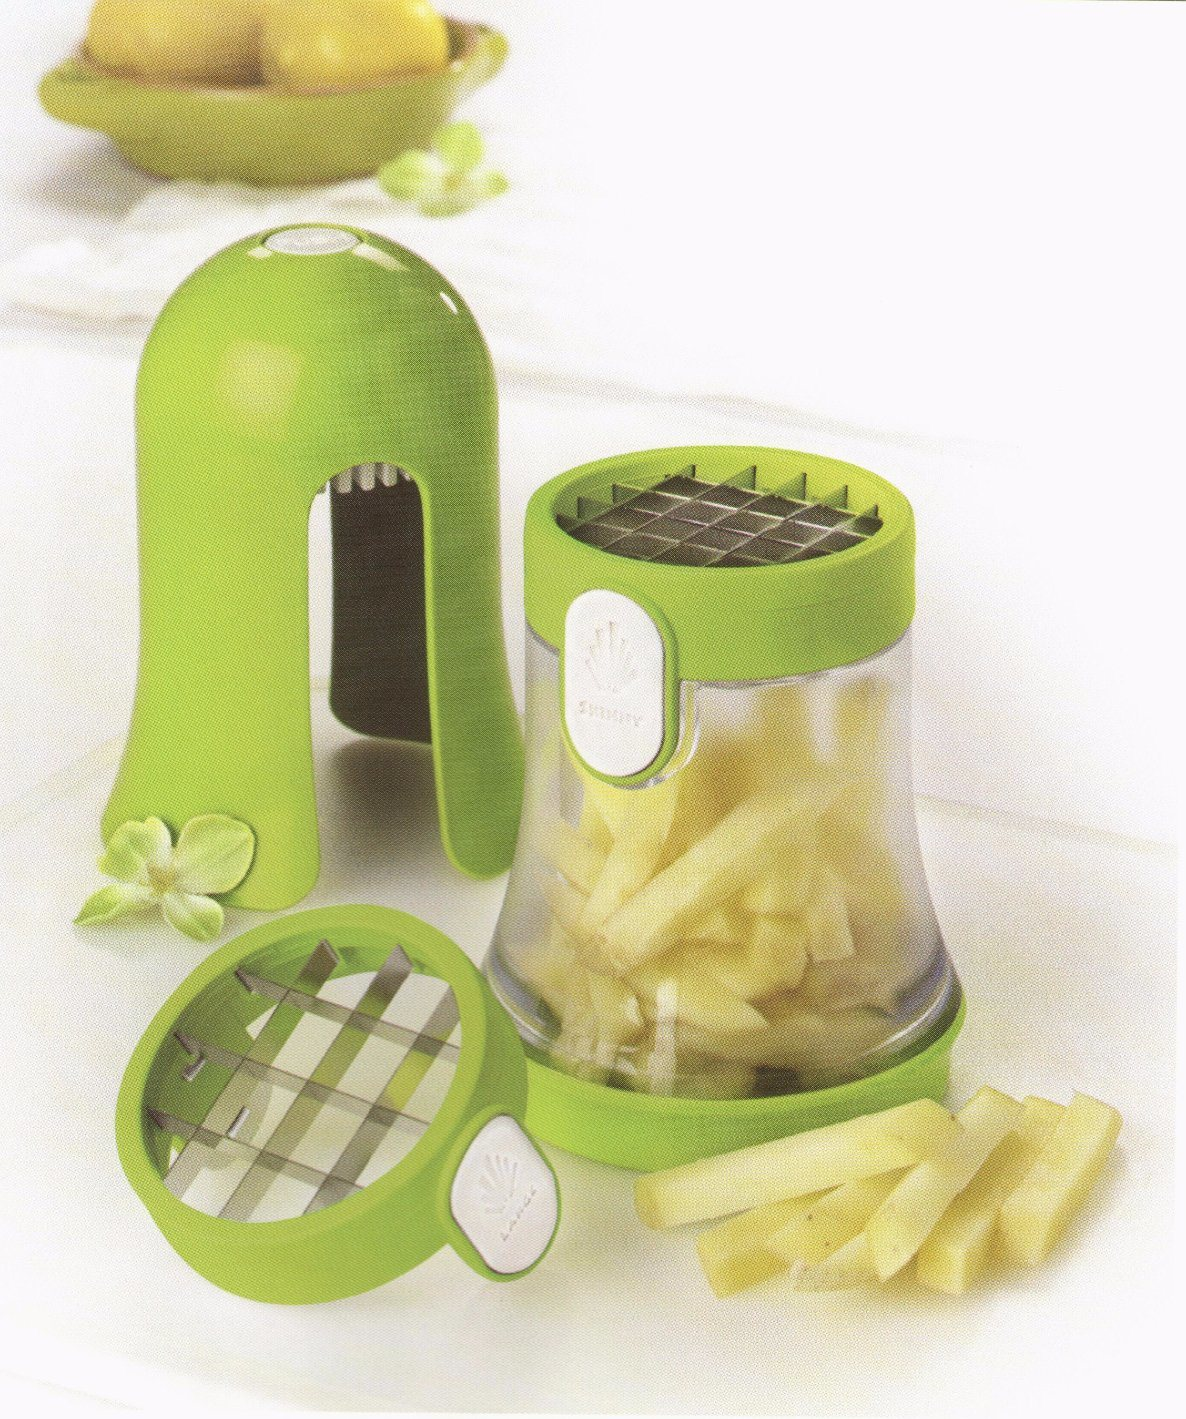 2 in 1 Fashion Plastic Vegetable Cutting Food Chopper Dice and Slice Machine Cg074